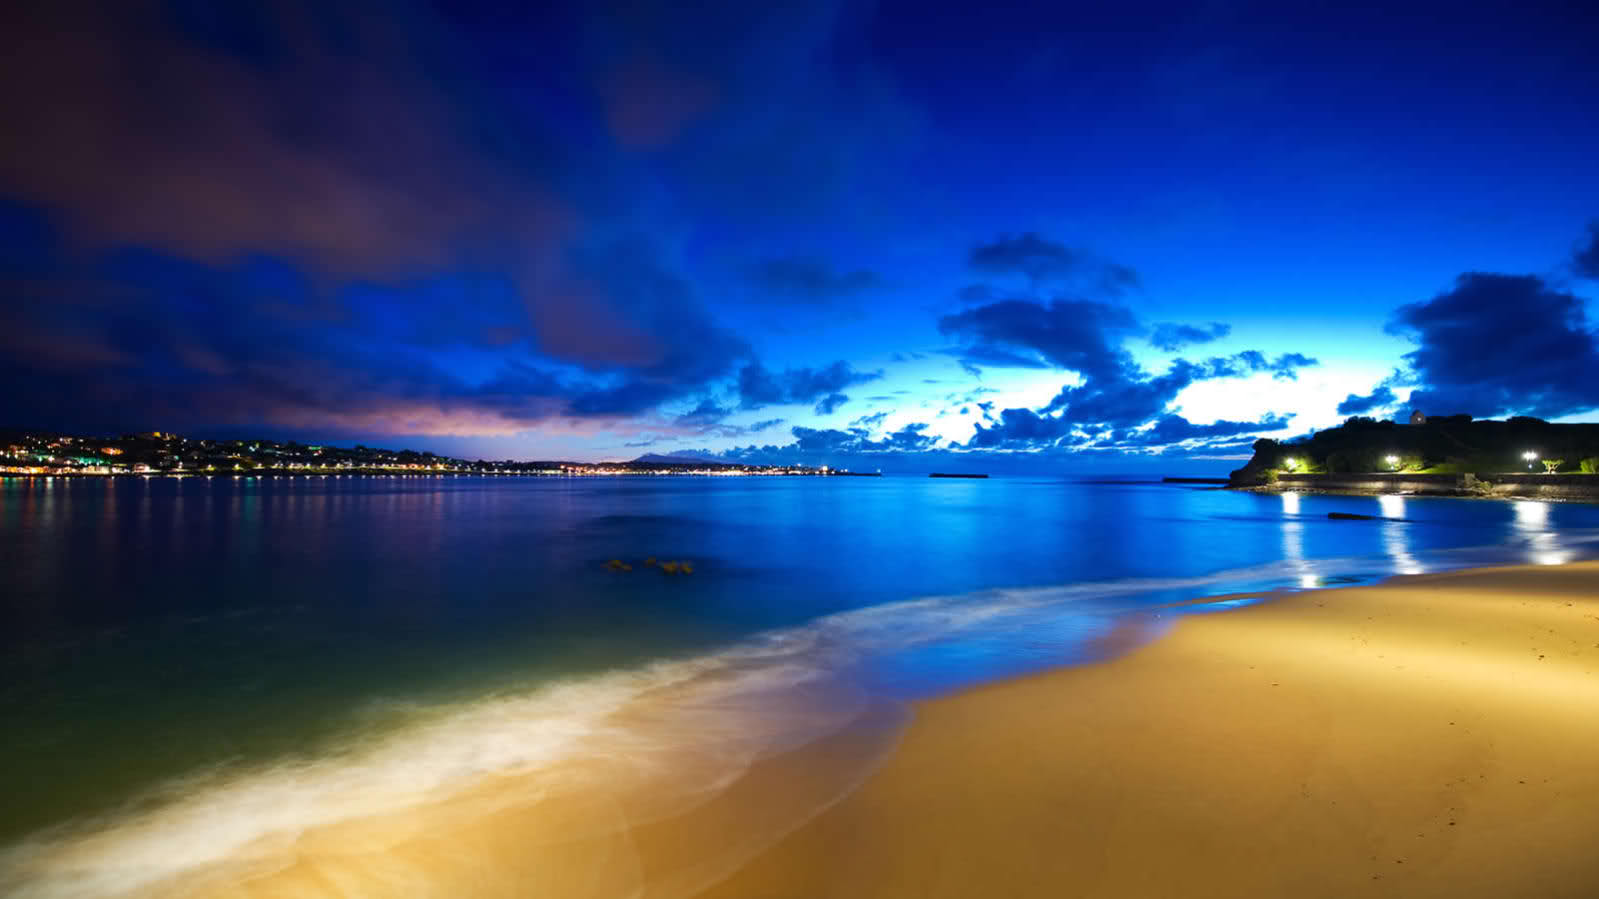 Beach Sunset   Cool Twitter Backgrounds 1599x899